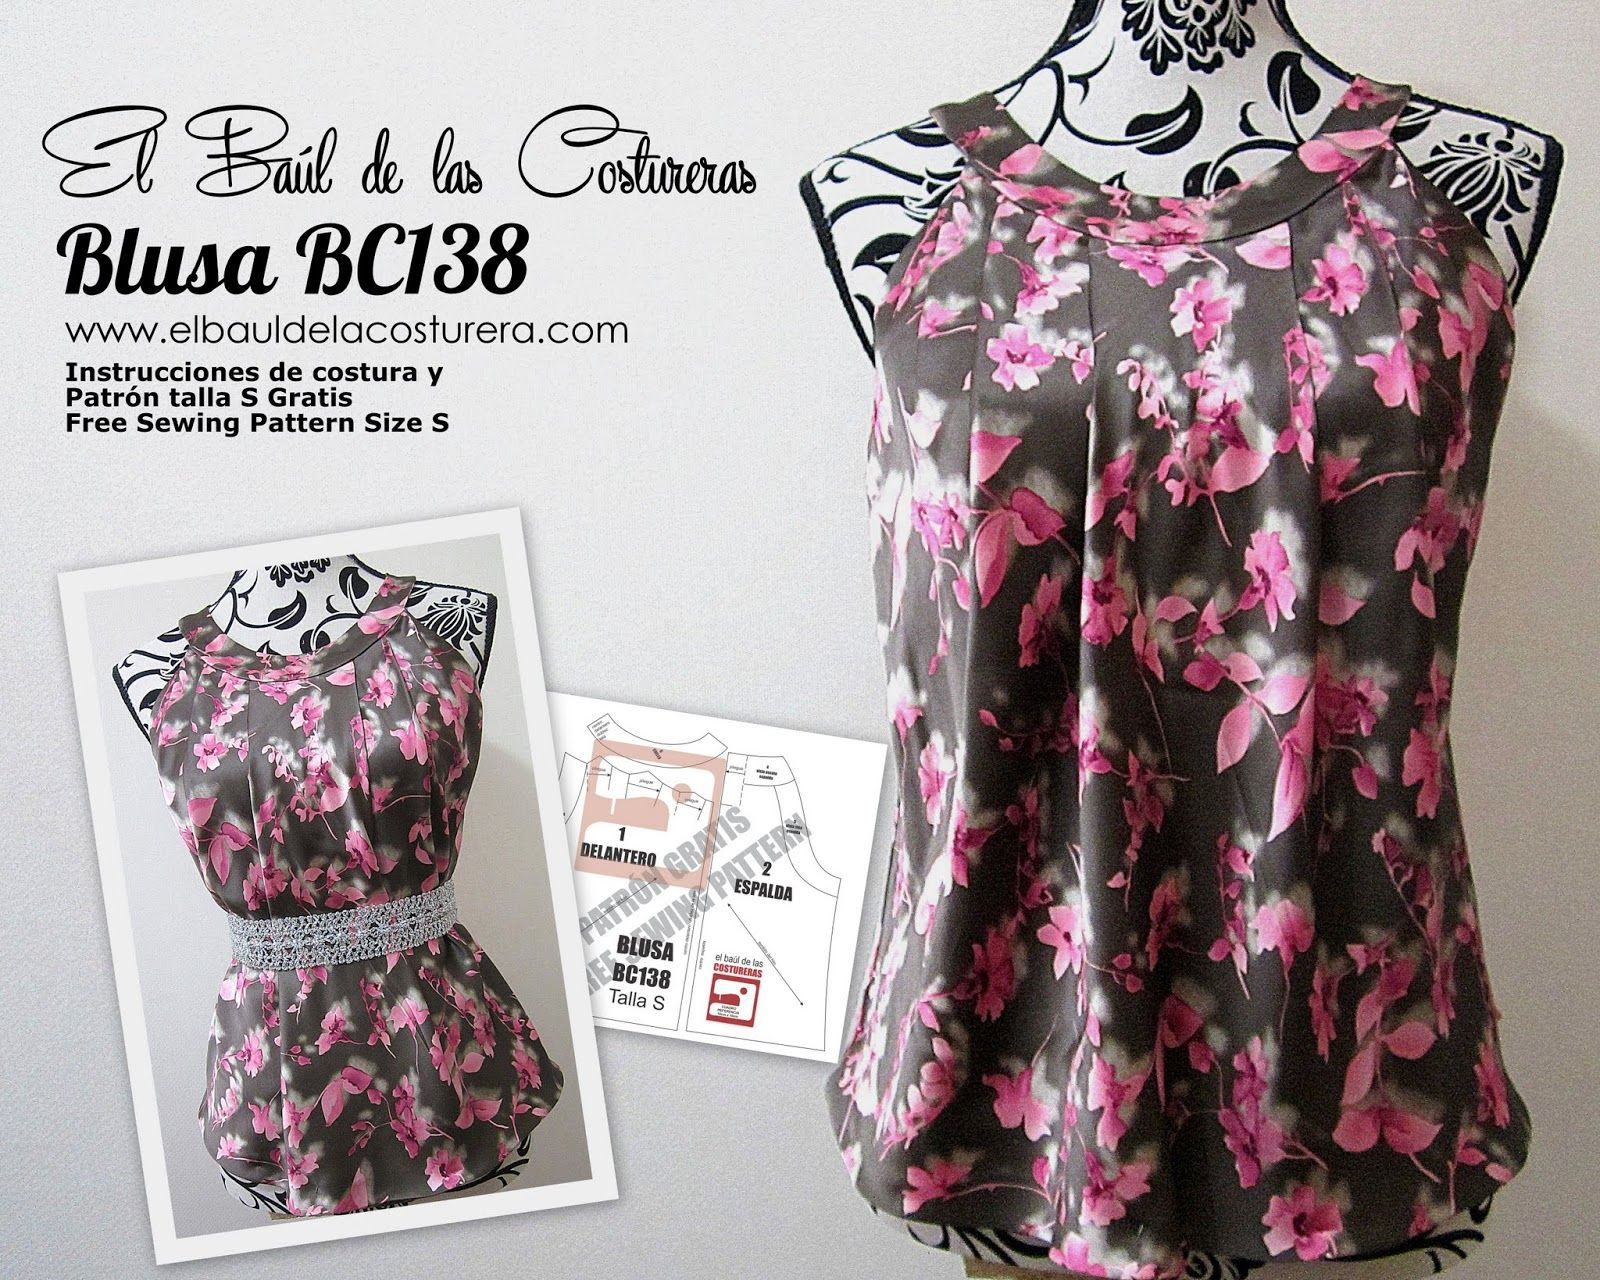 Blusa BC138 Sisa Americana | Sewing | Pinterest | Sewing, Sewing ...